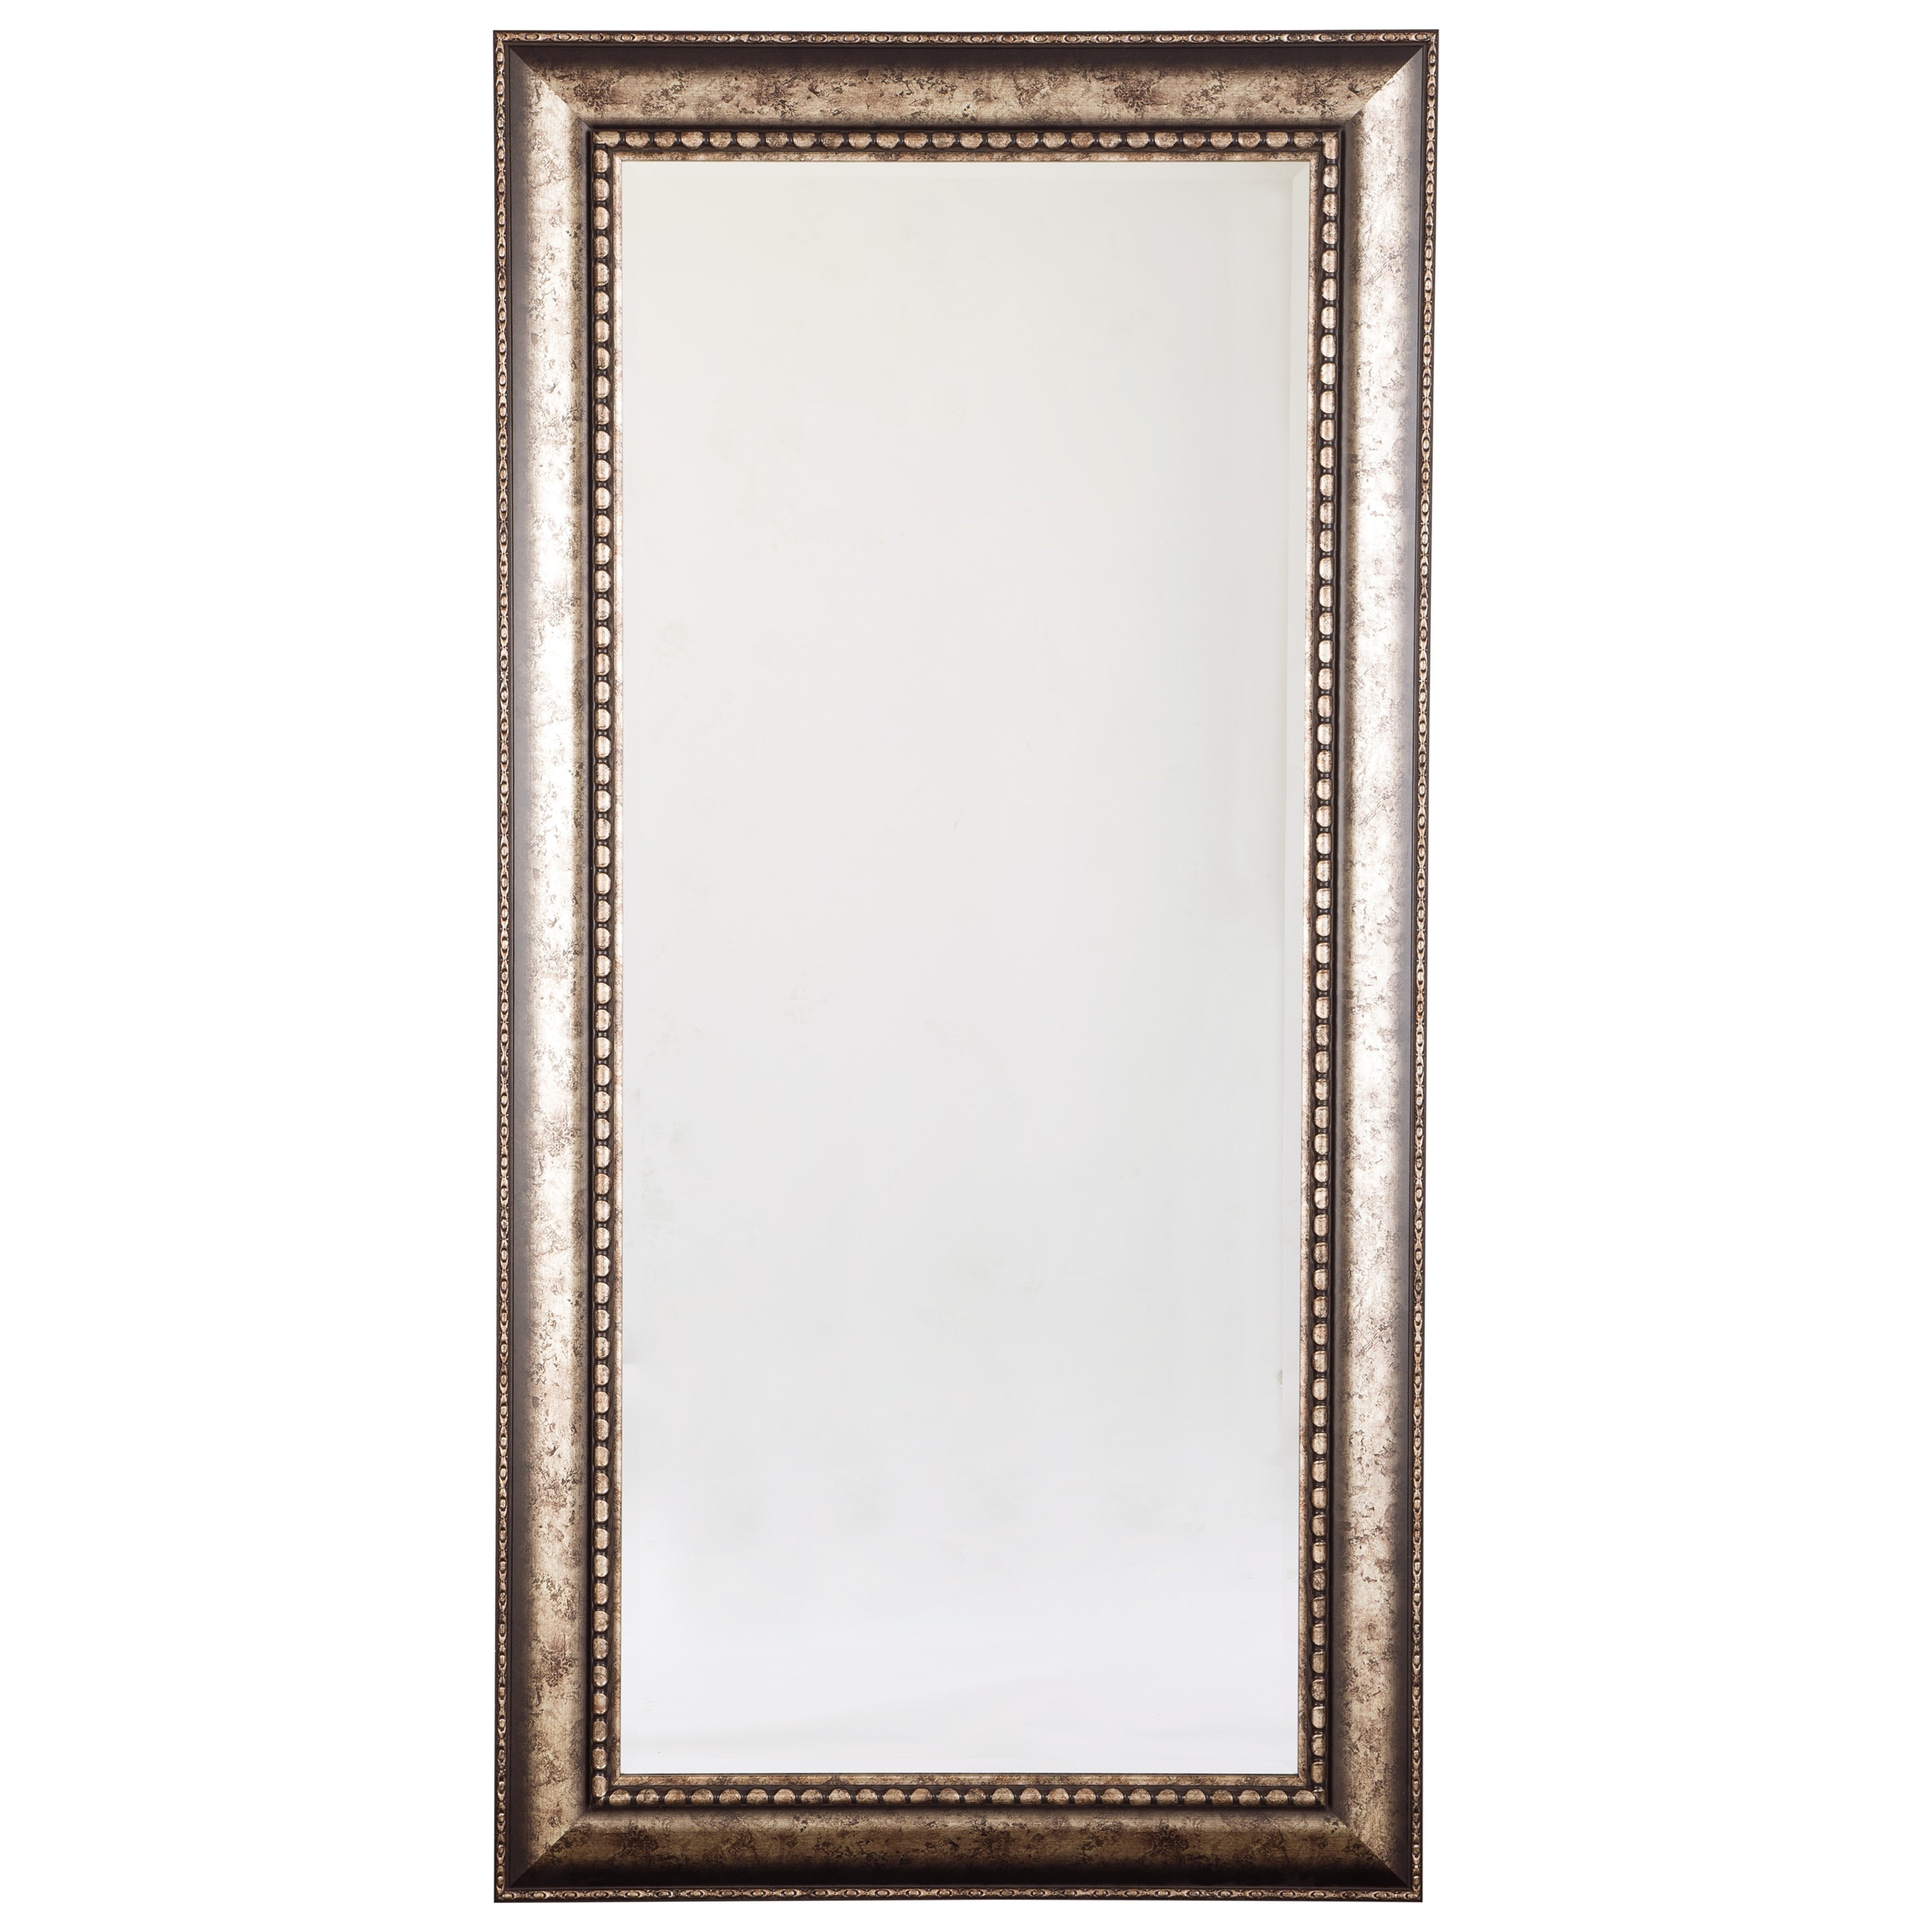 Accent Mirrors Dulal Antique Silver Finish Accent Mirror by Signature Design by Ashley at Value City Furniture